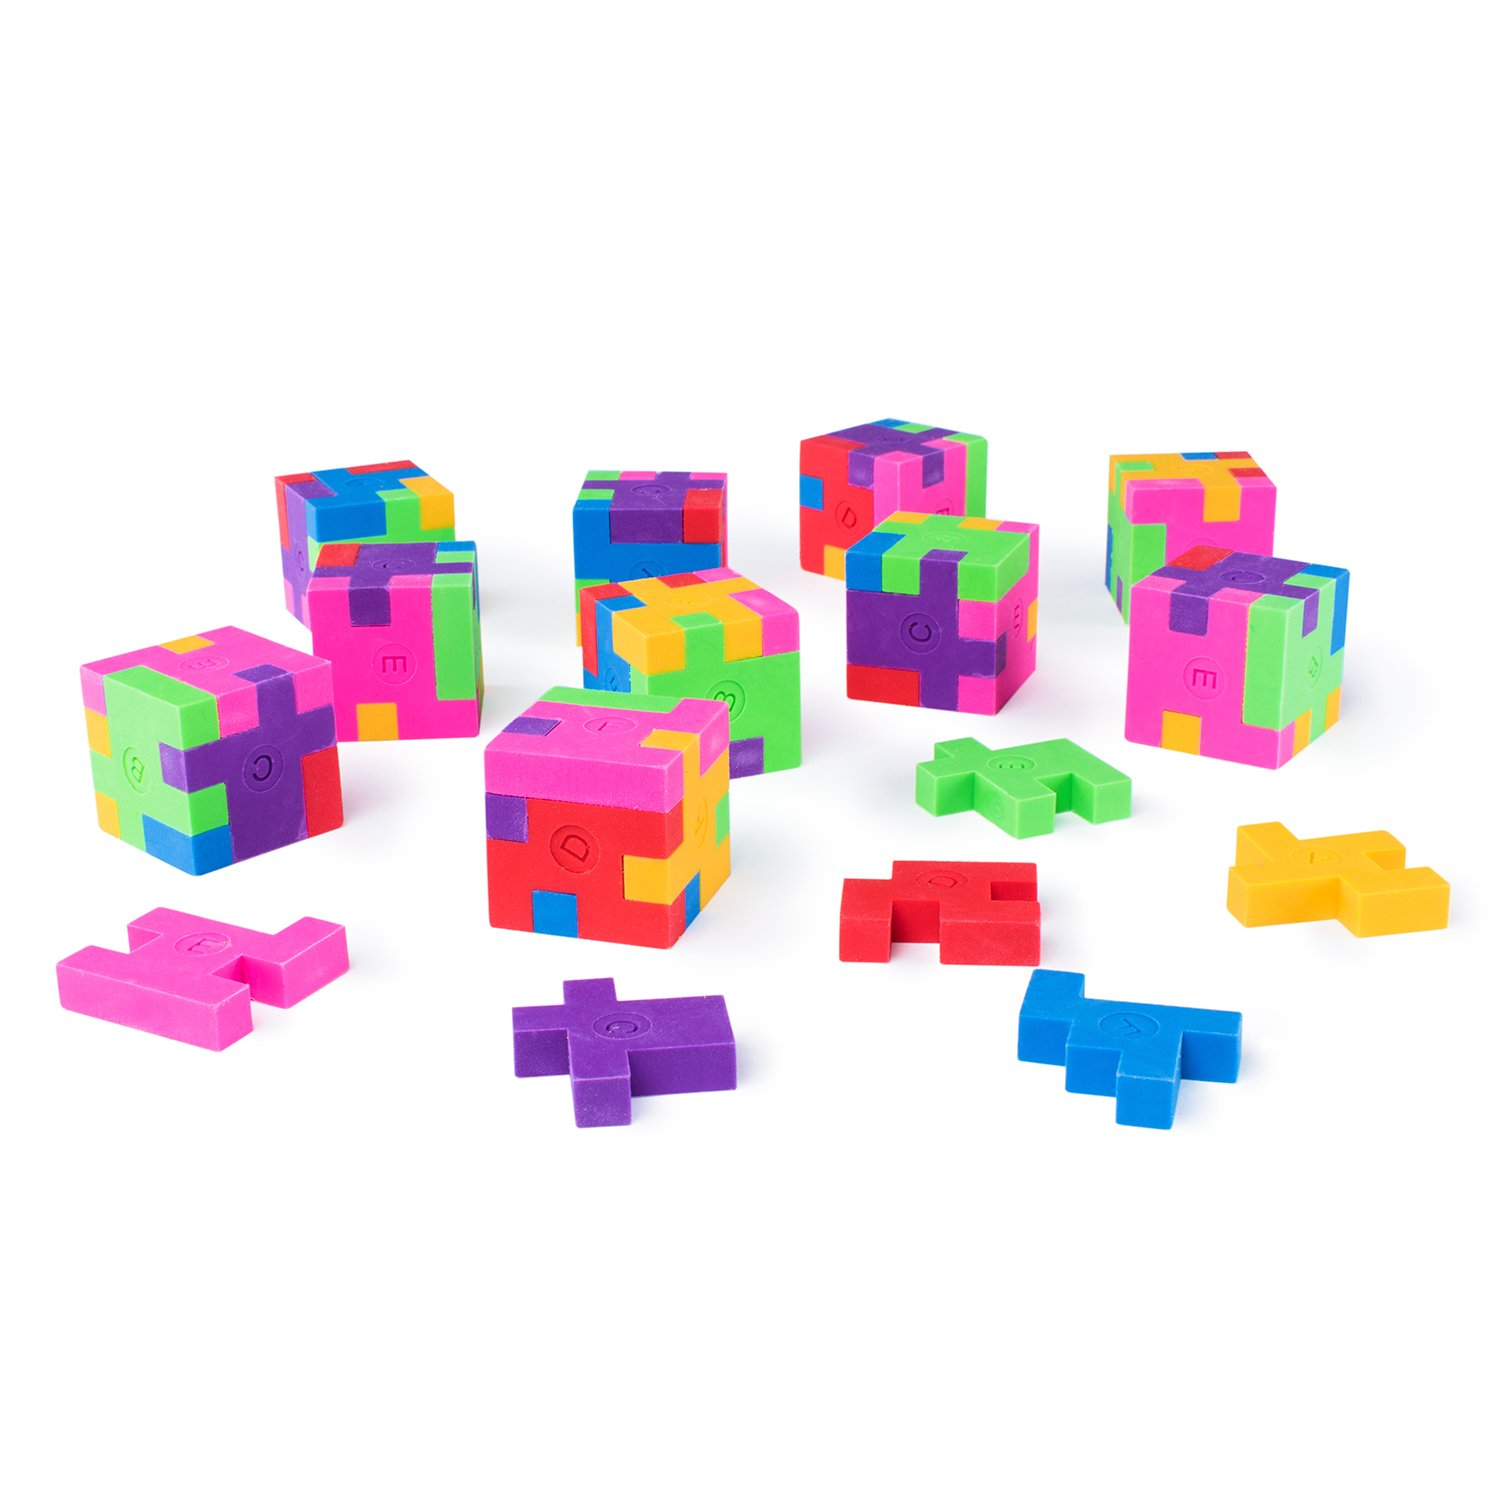 Mini Colorful Geometric Shape Puzzle Pencil Erasers for School Supplies, Party Favors, Games & Activities (12 Pack)